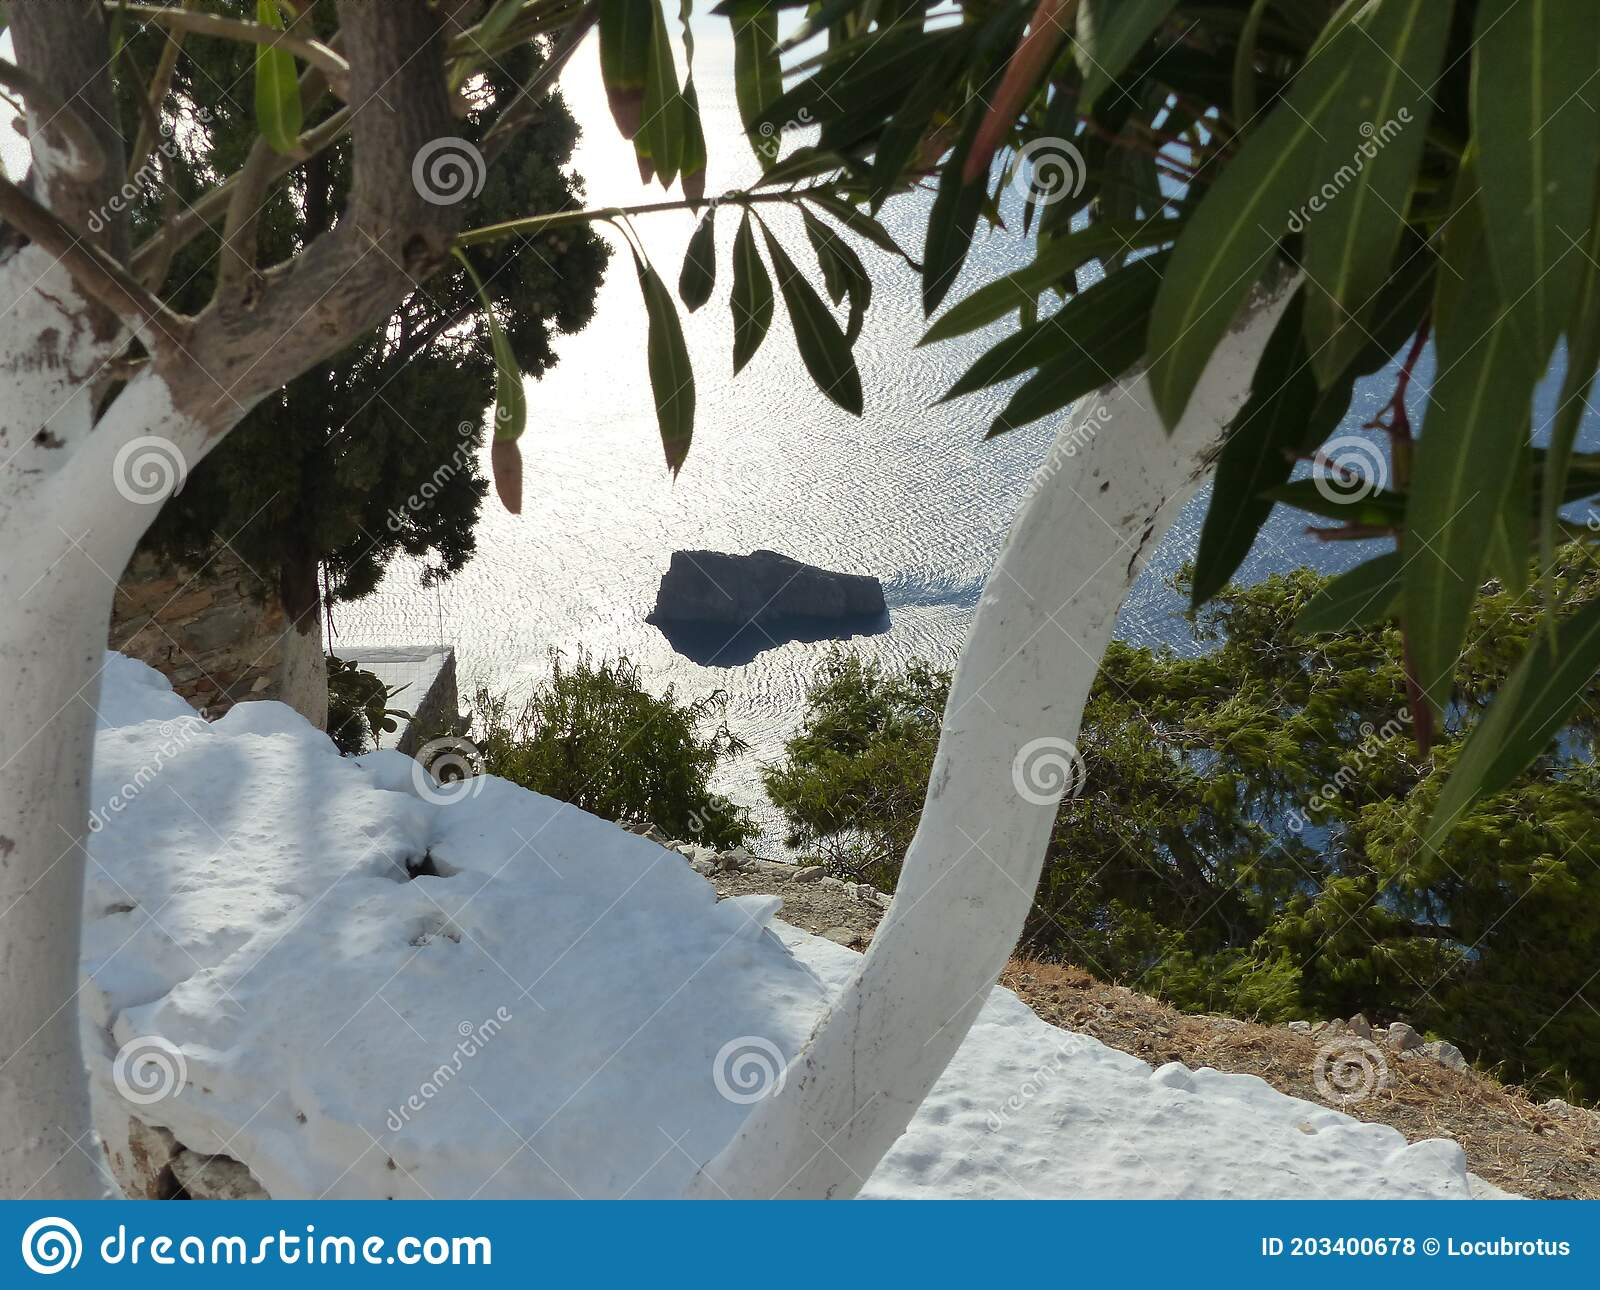 Seascaoe Seen From White Painted Tree Branches To Amorgos In Greece Stock Photo Image Of Peace Wall 203400678